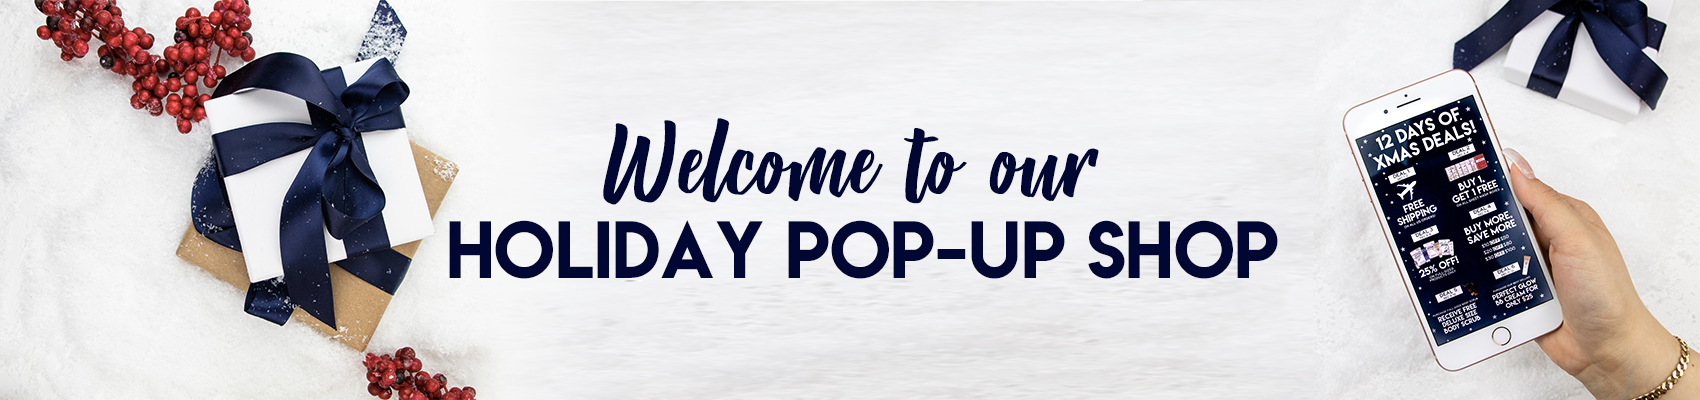 Welcome to our Holiday Pop-Up Shop